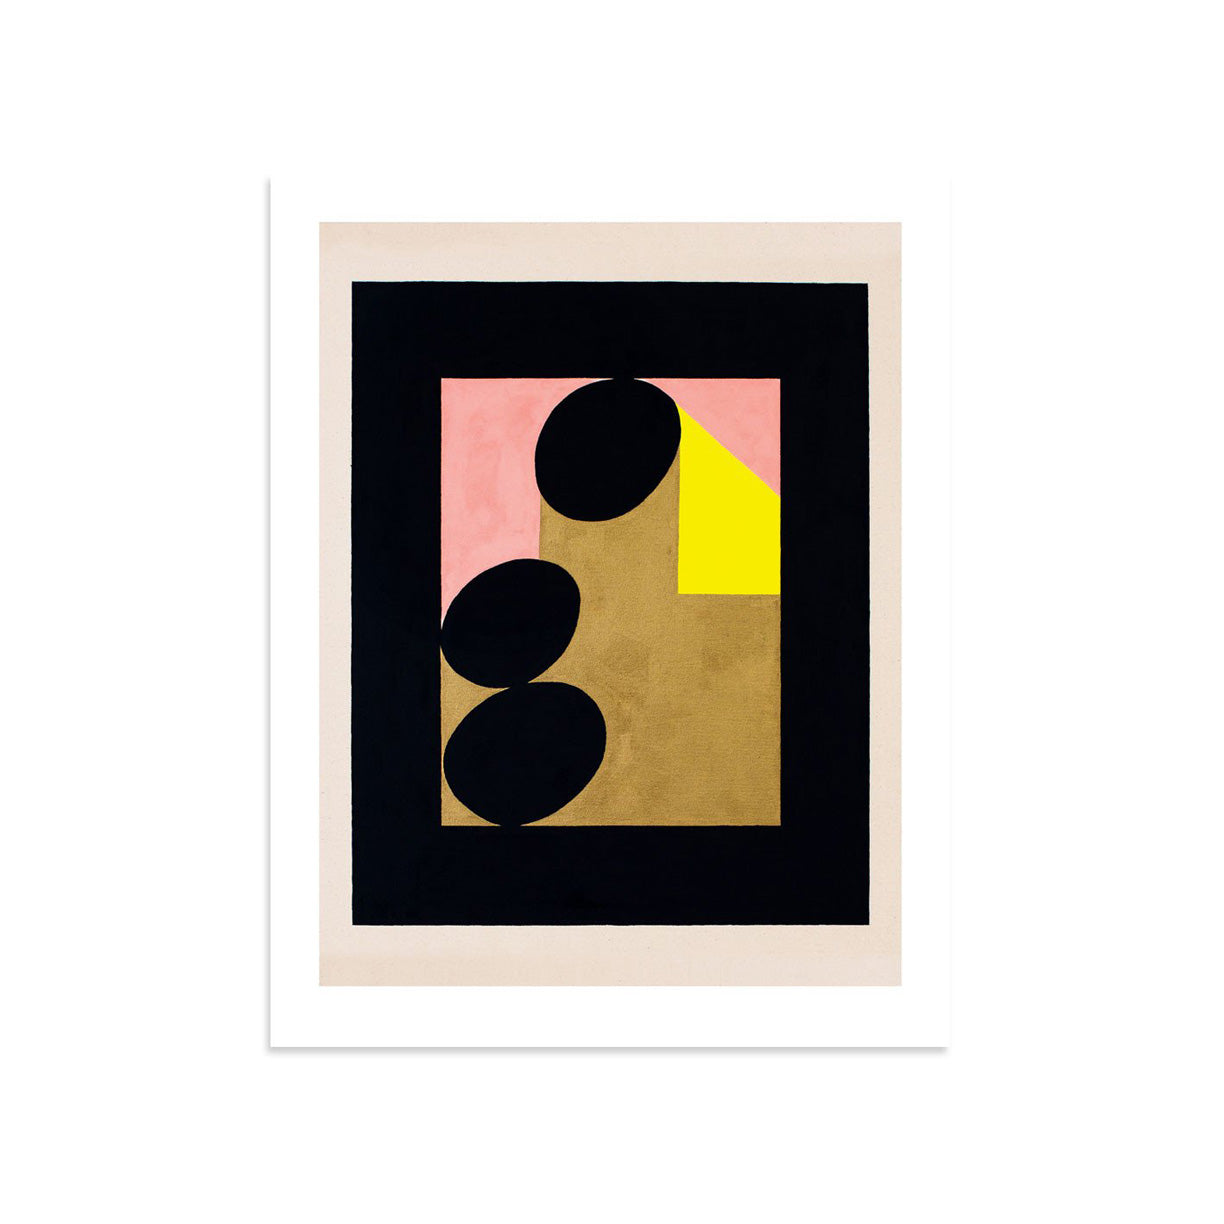 Framed Stories (a woman with yellow hair) by Shohei Takasaki | Print | Poster Child Prints